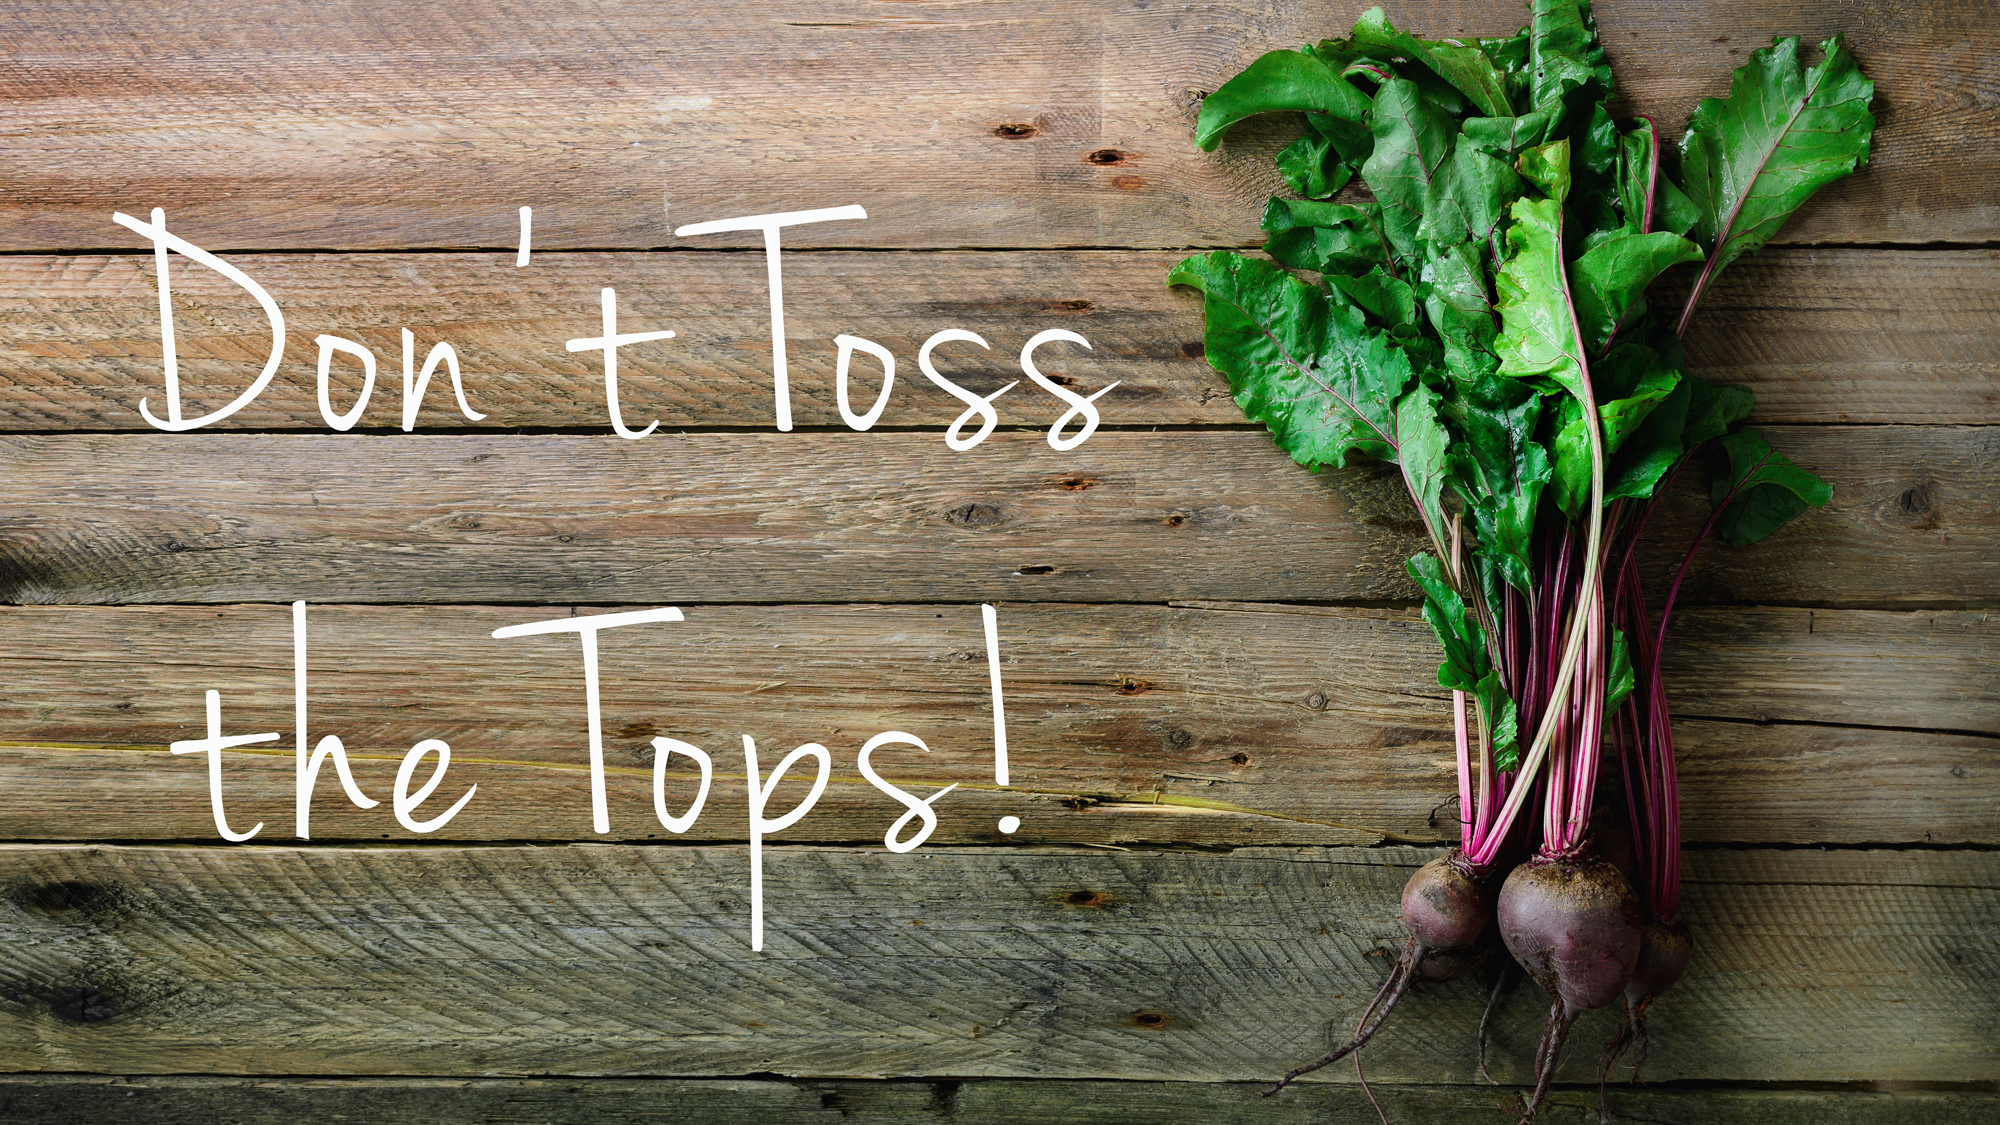 Get the most out of your food